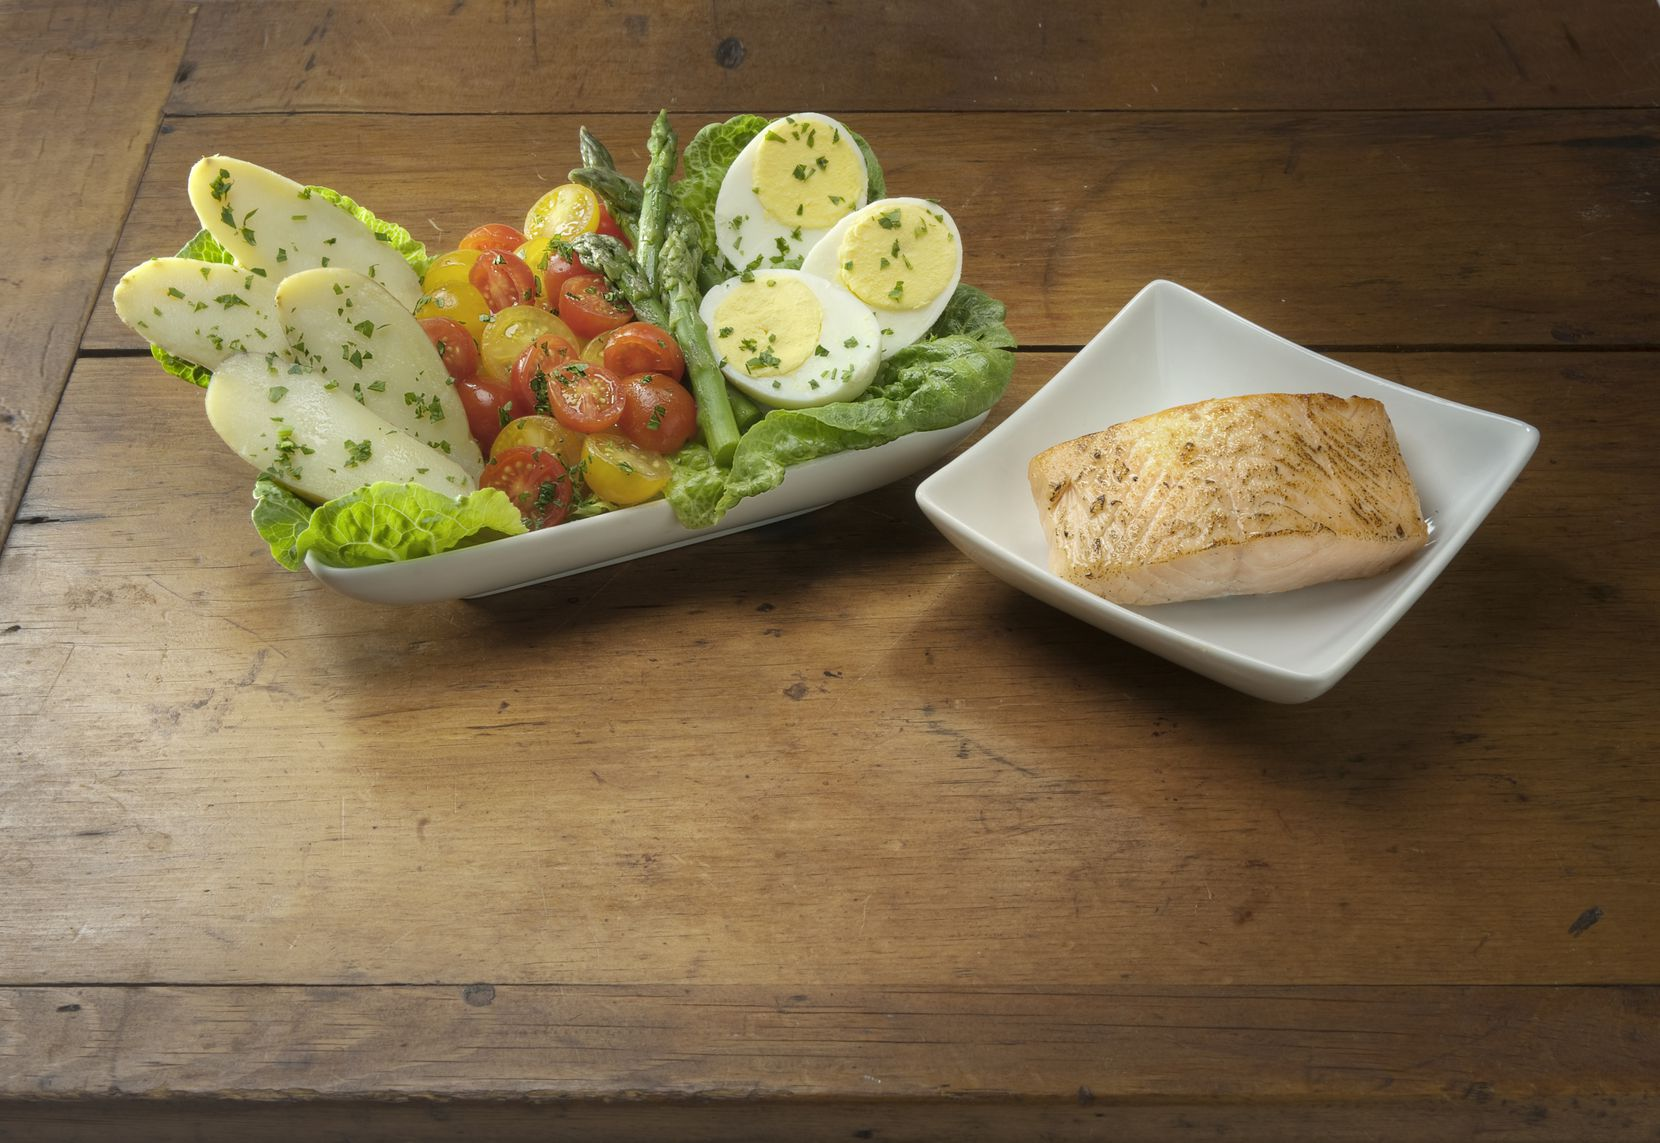 The New School Nicoise with Salmon salad designed by Dallas Chef Julian Barsotti debuted on American Airlines in-flight menus on Nov. 1